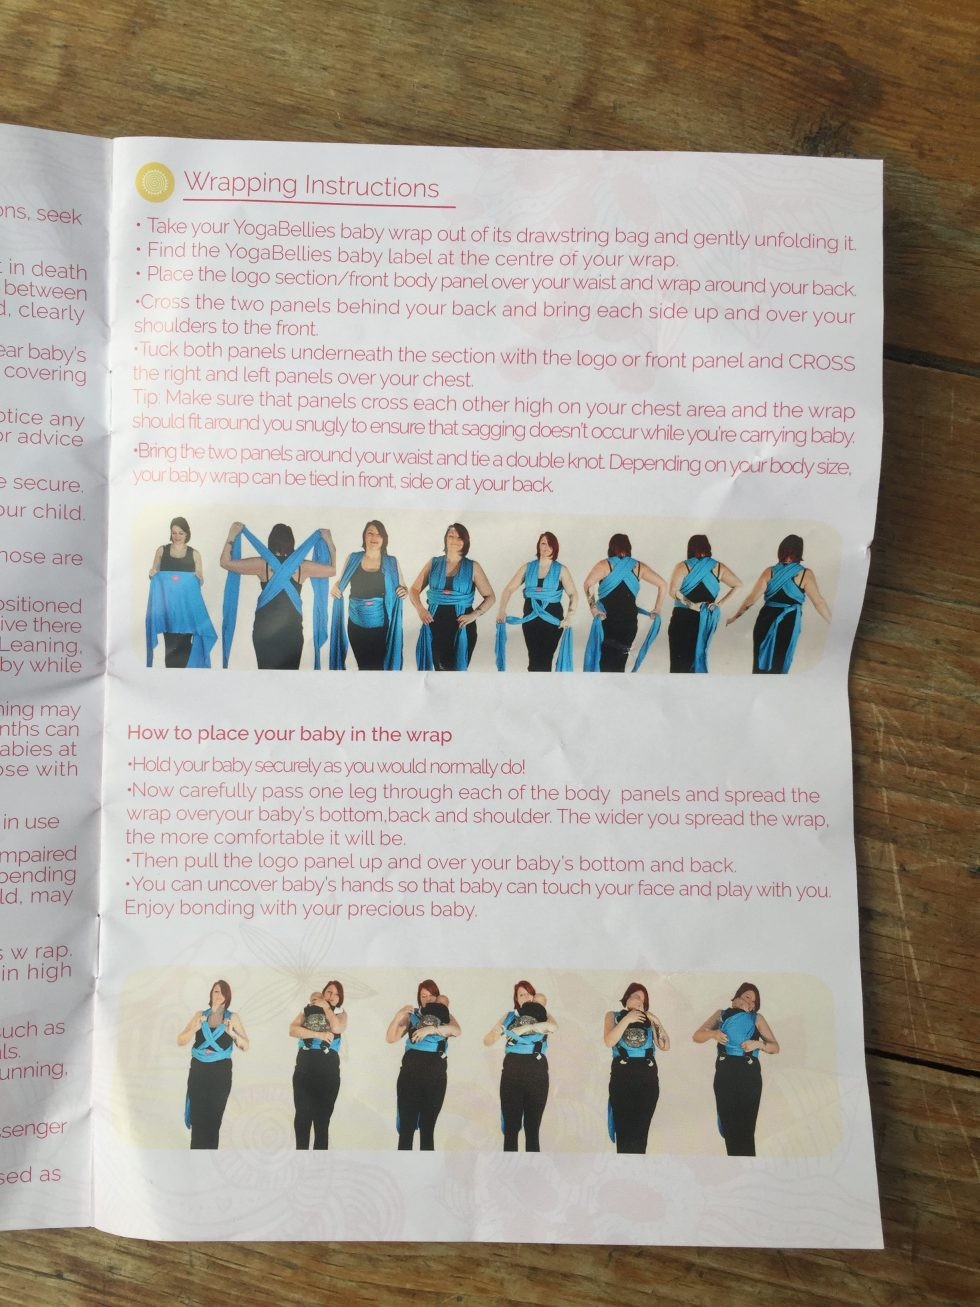 yogabellies instructions